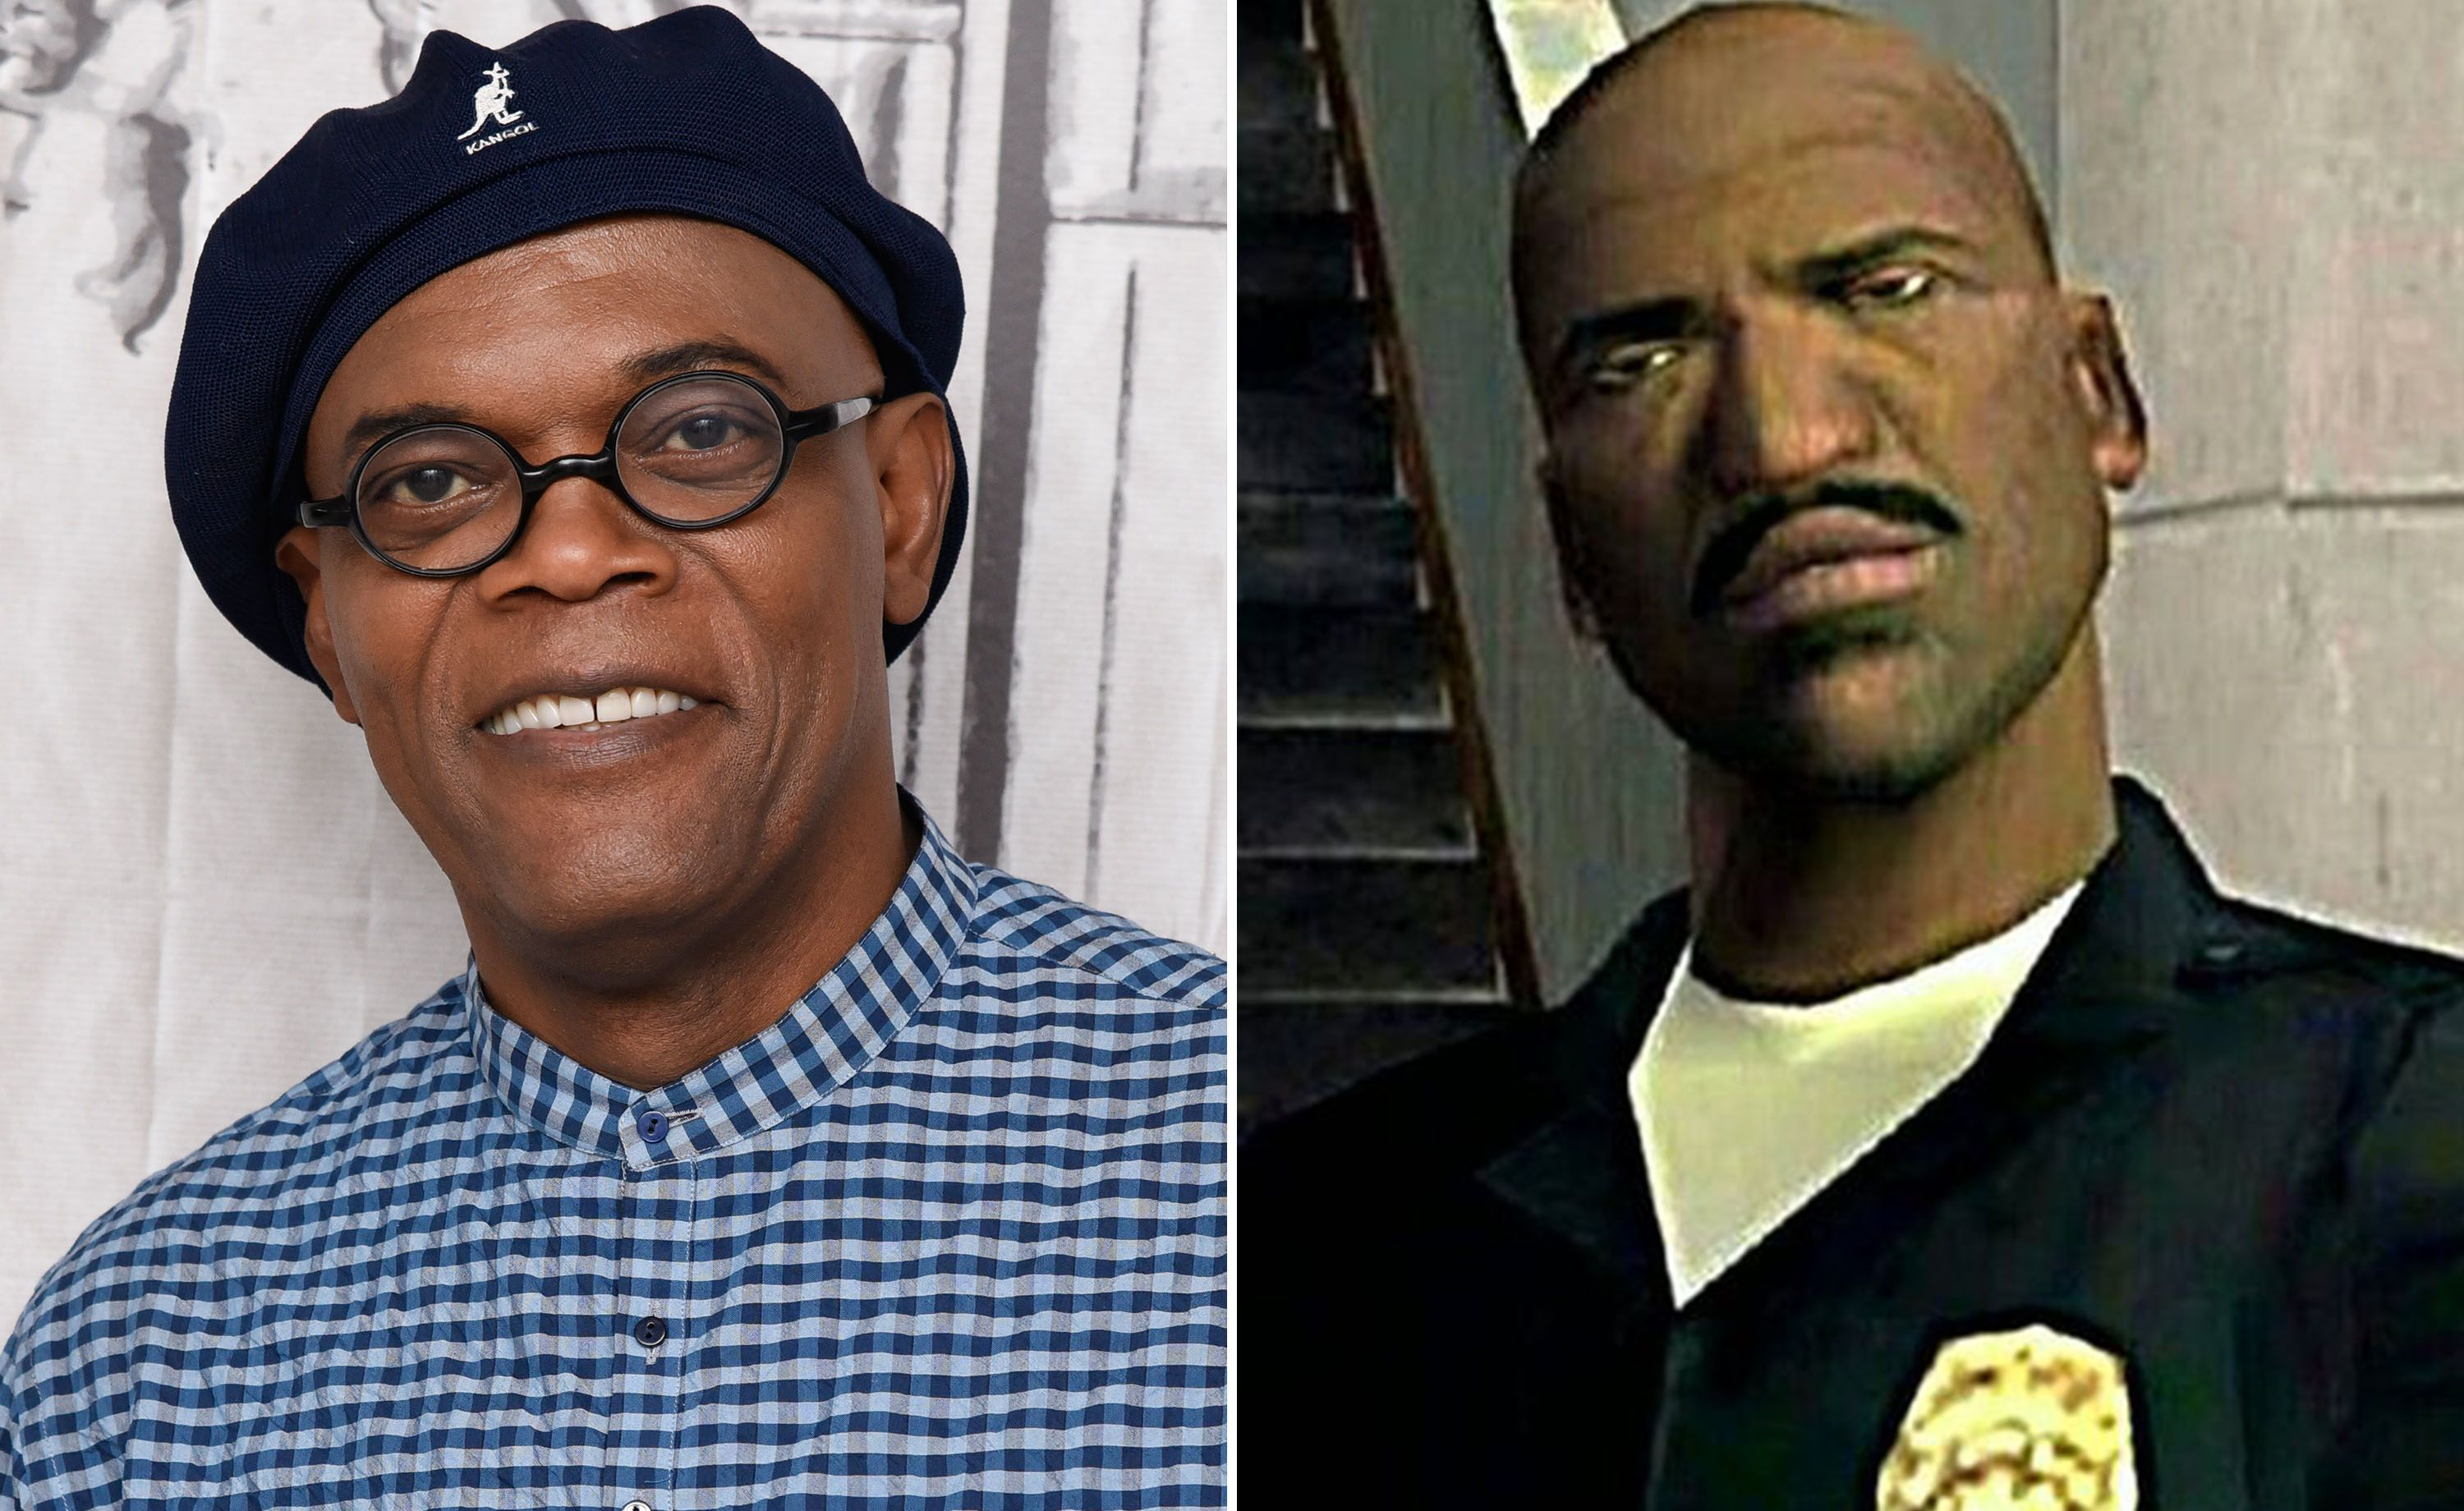 25 Grand Theft Auto celebrity guest stars that stole the show, from